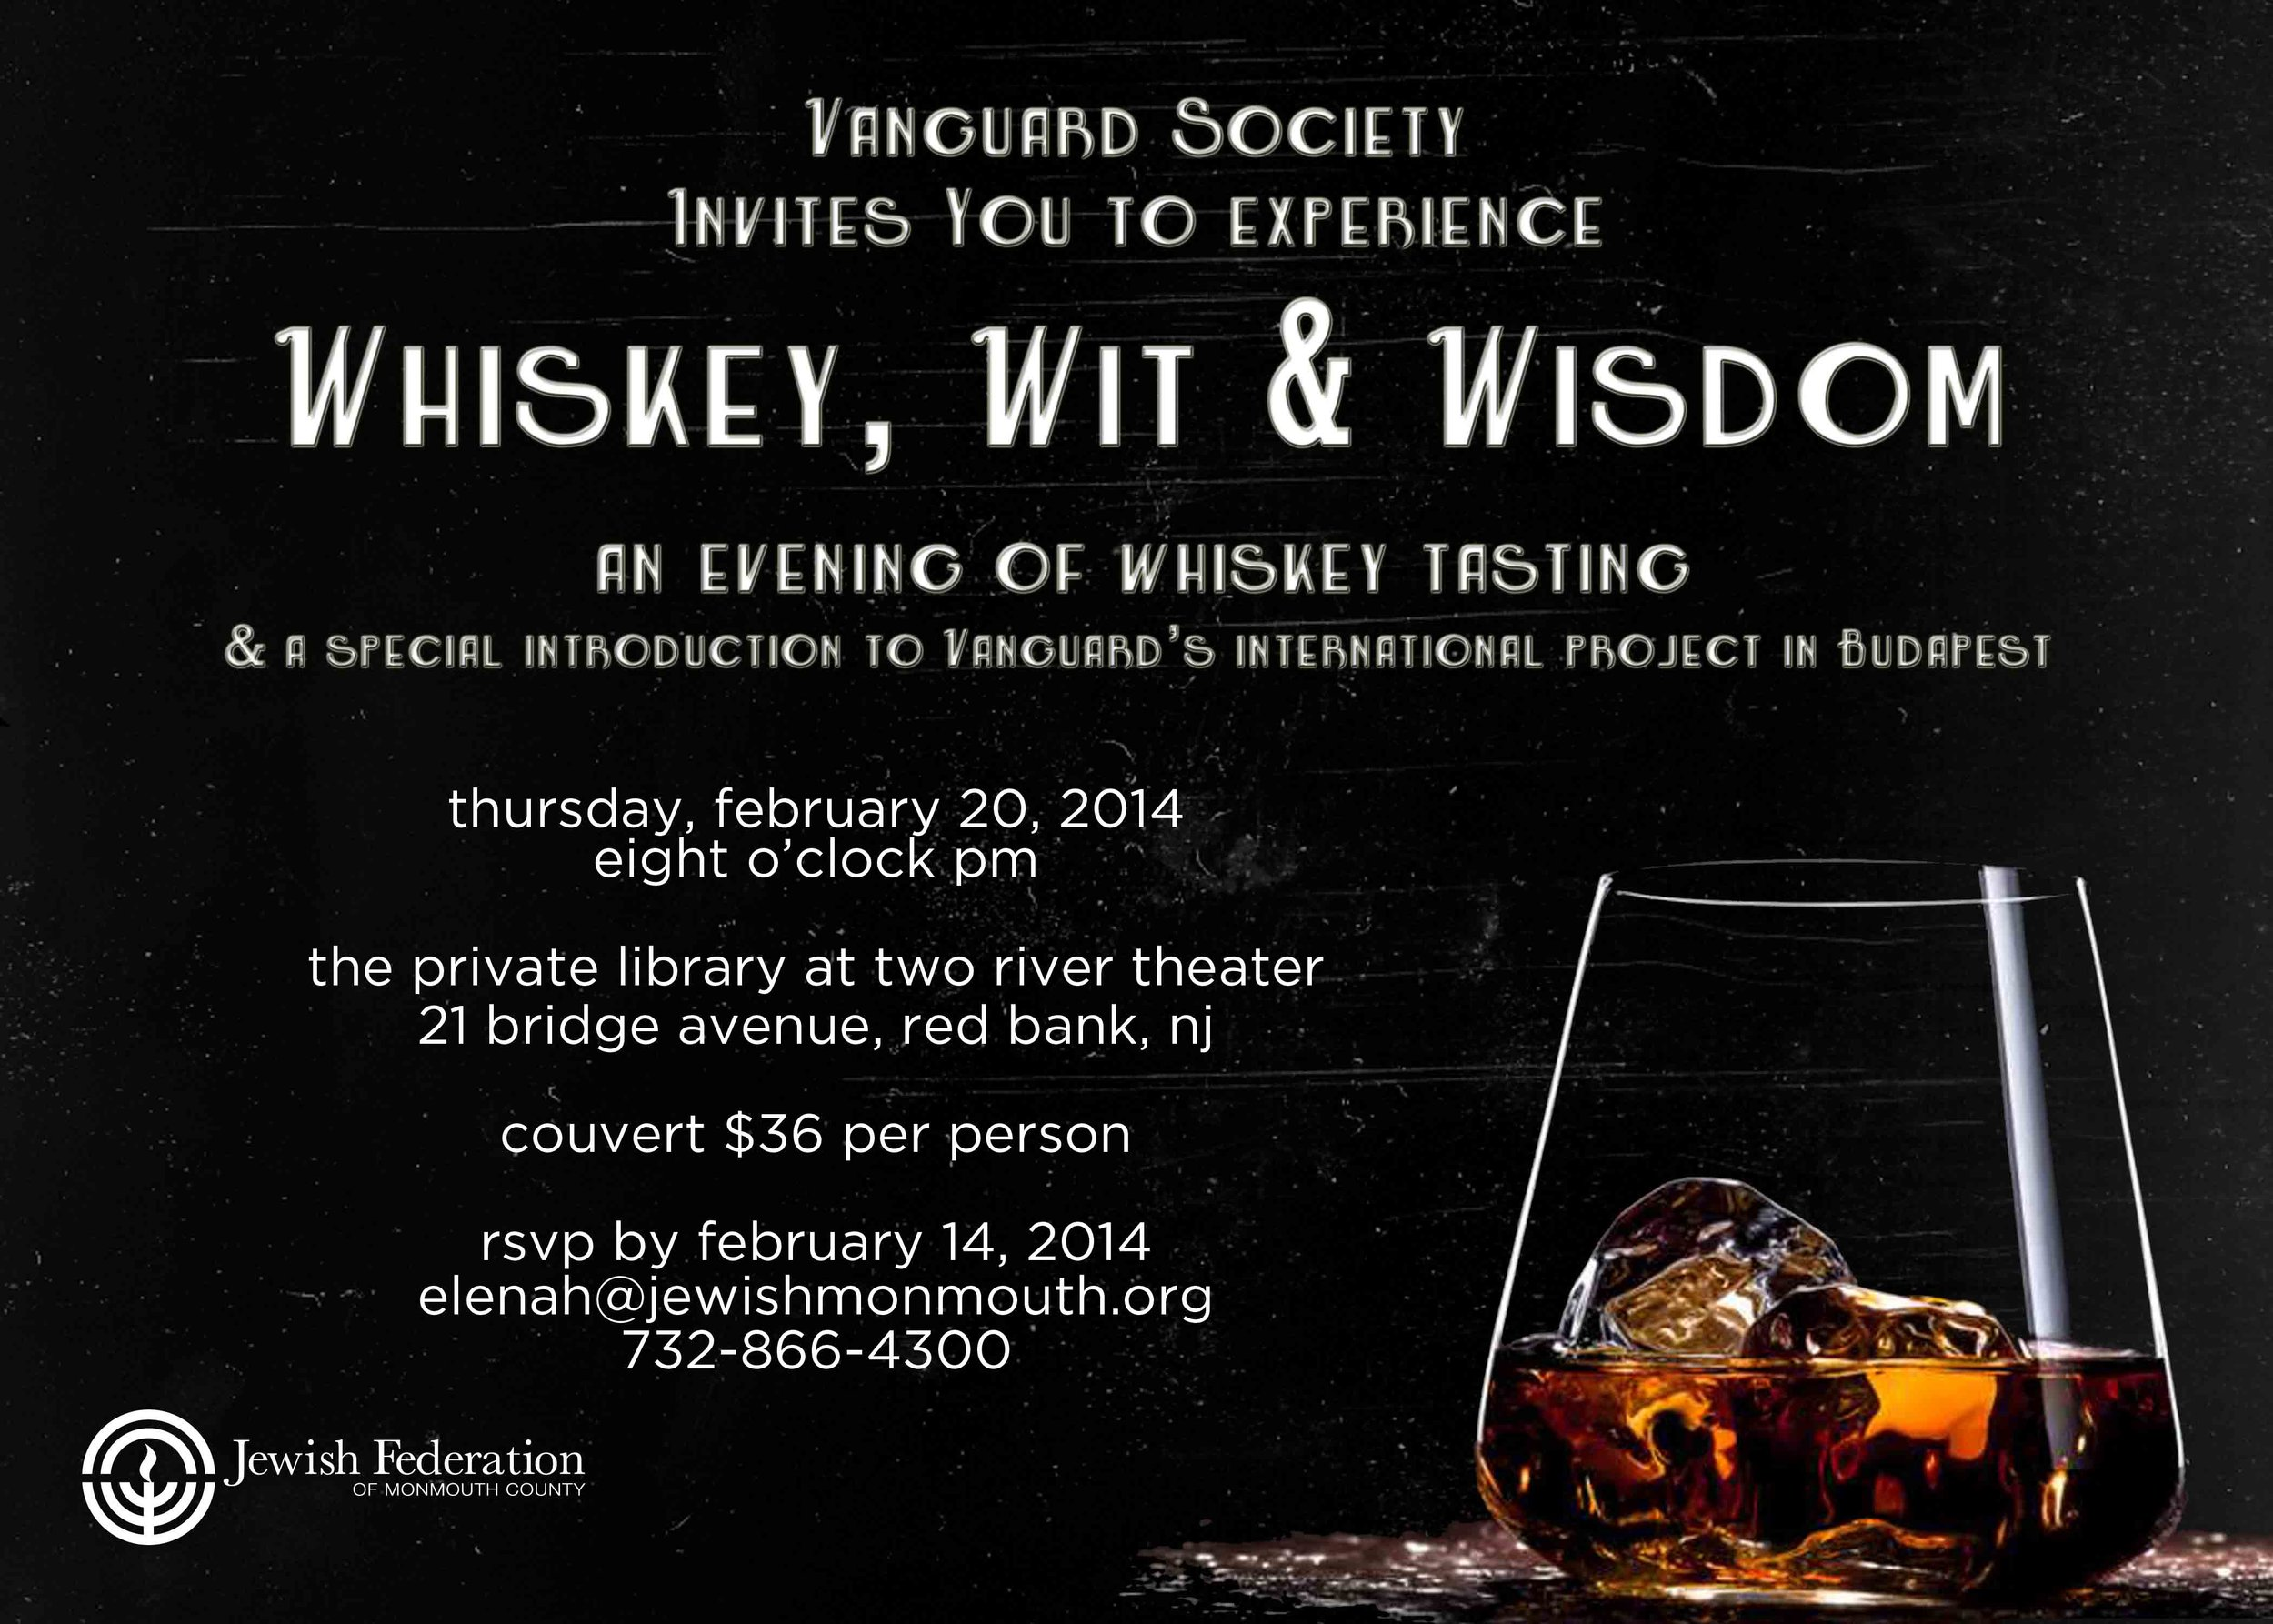 Vanguard Whiskey Invitation 1-23-0425.jpg